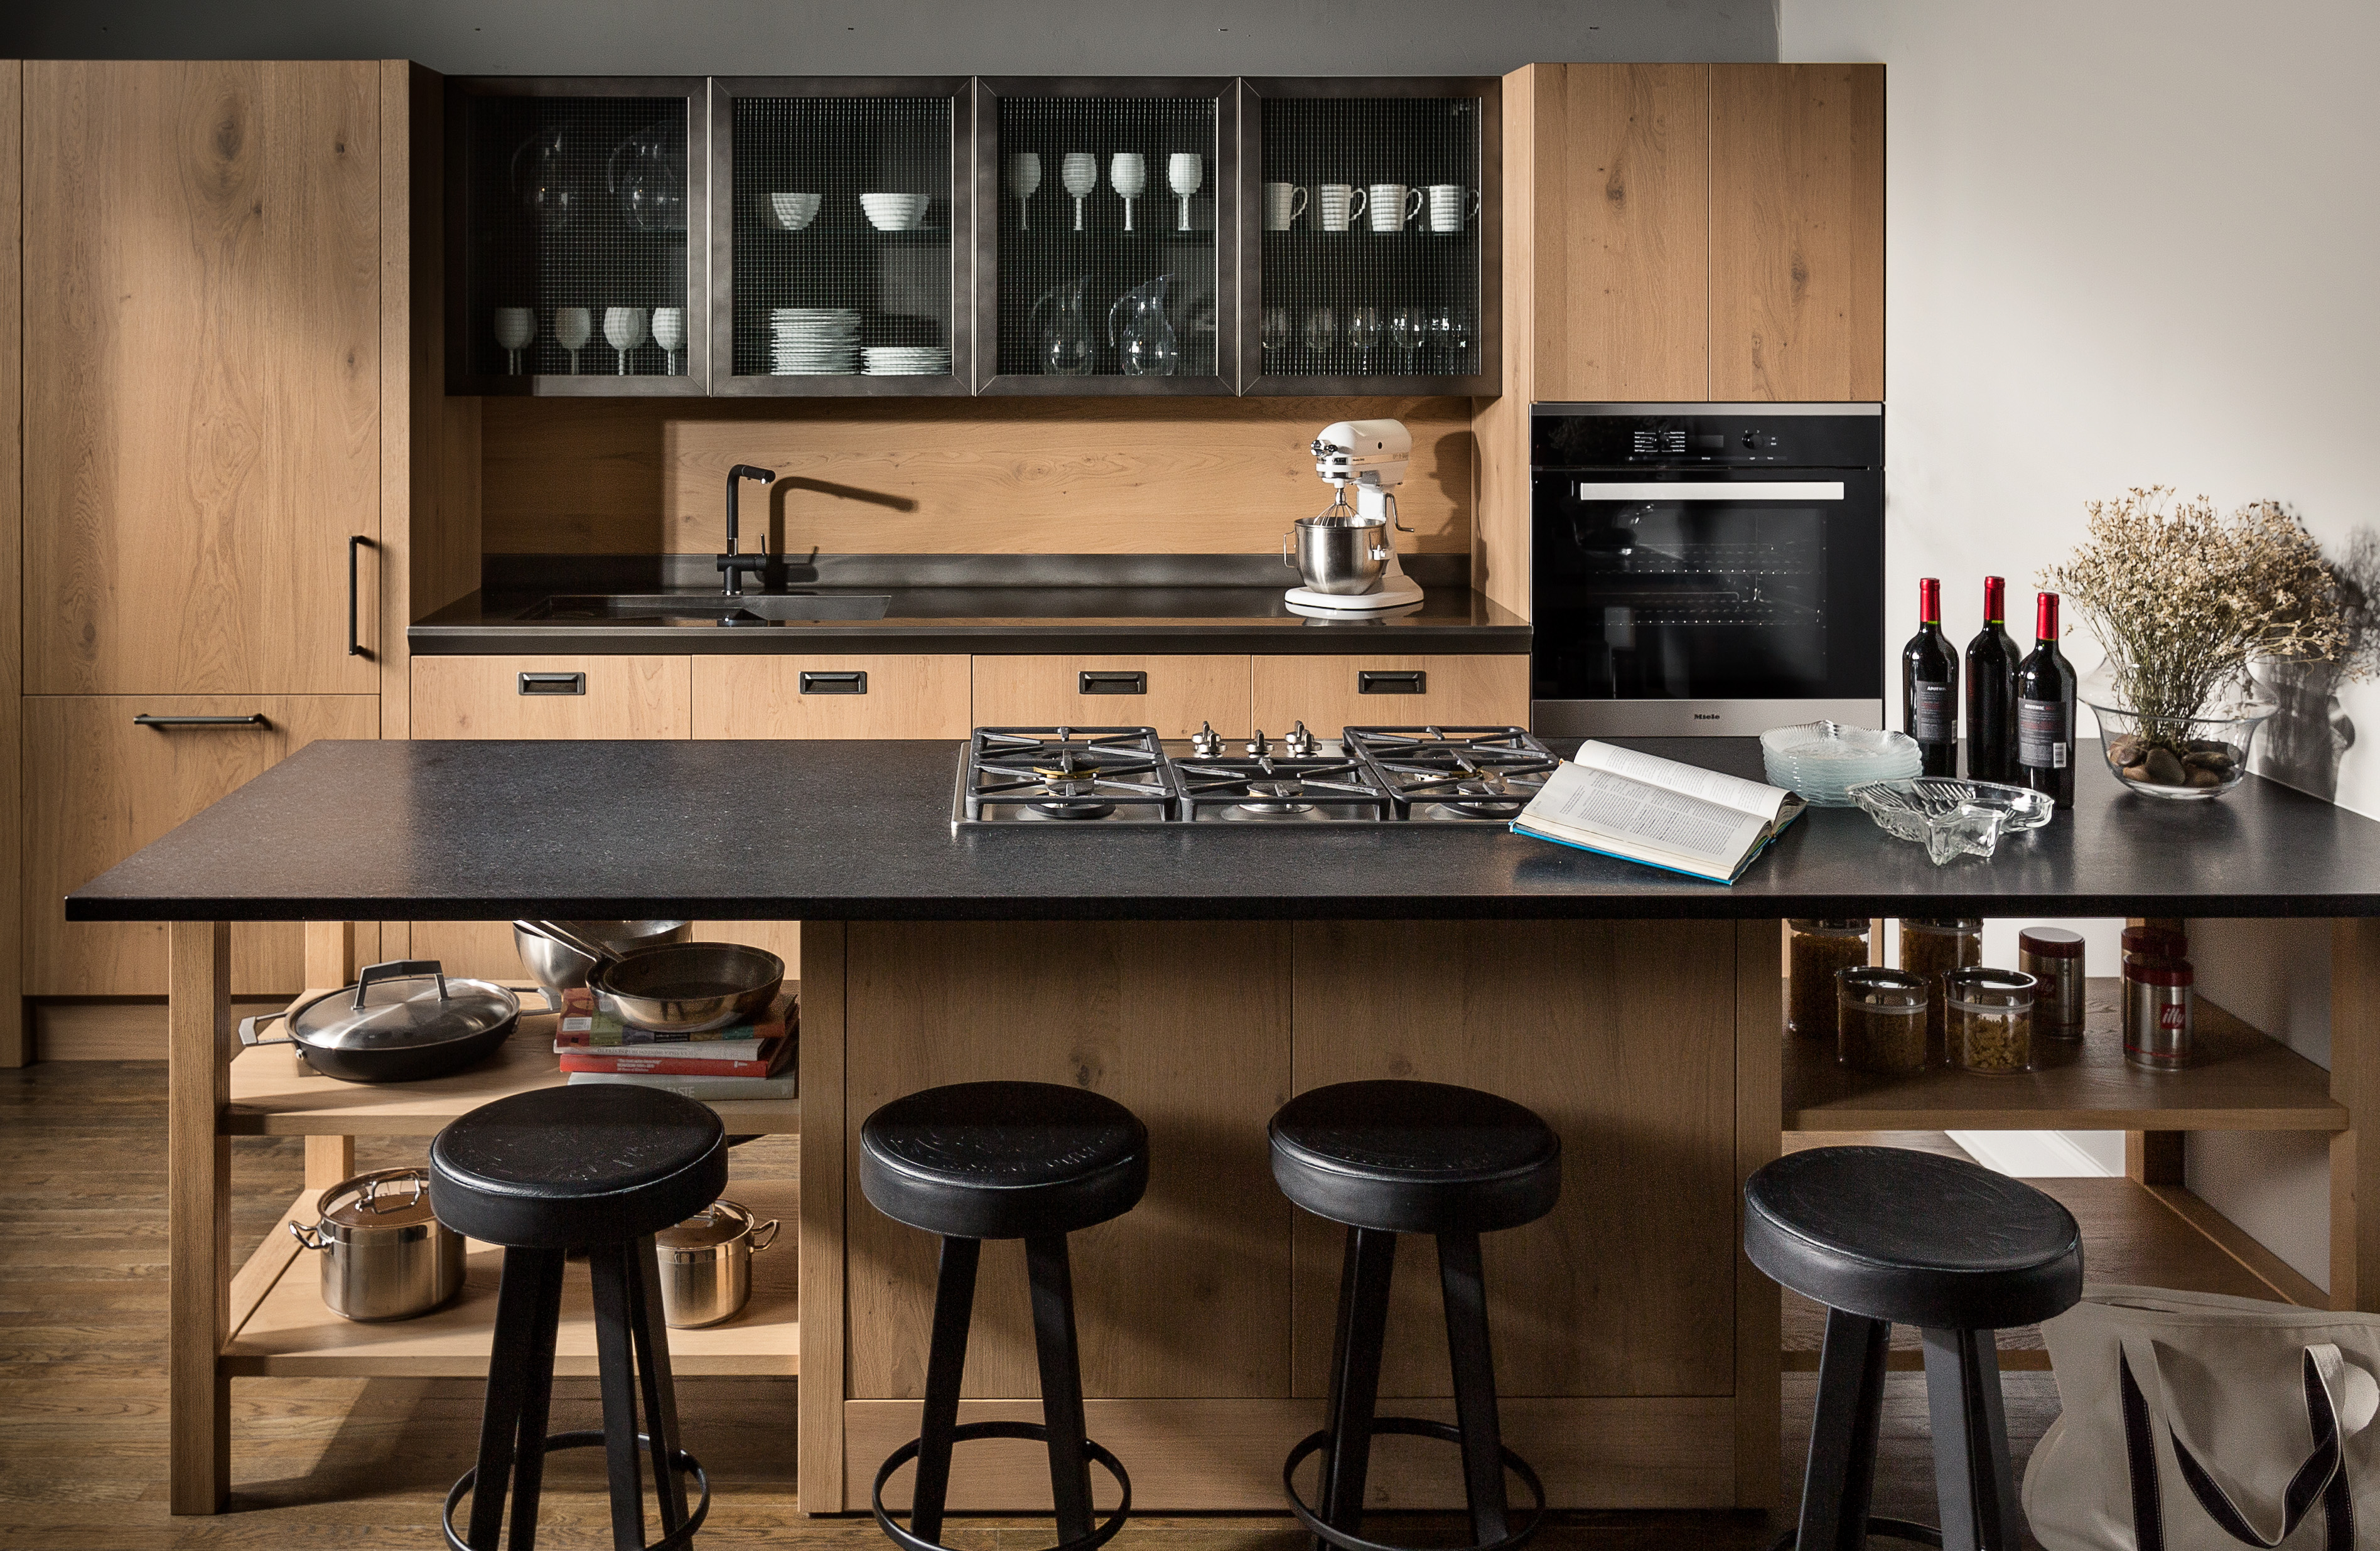 Scavolini Kitchens the fashion kitchen: scavolini and diesel meld rustic and luxury